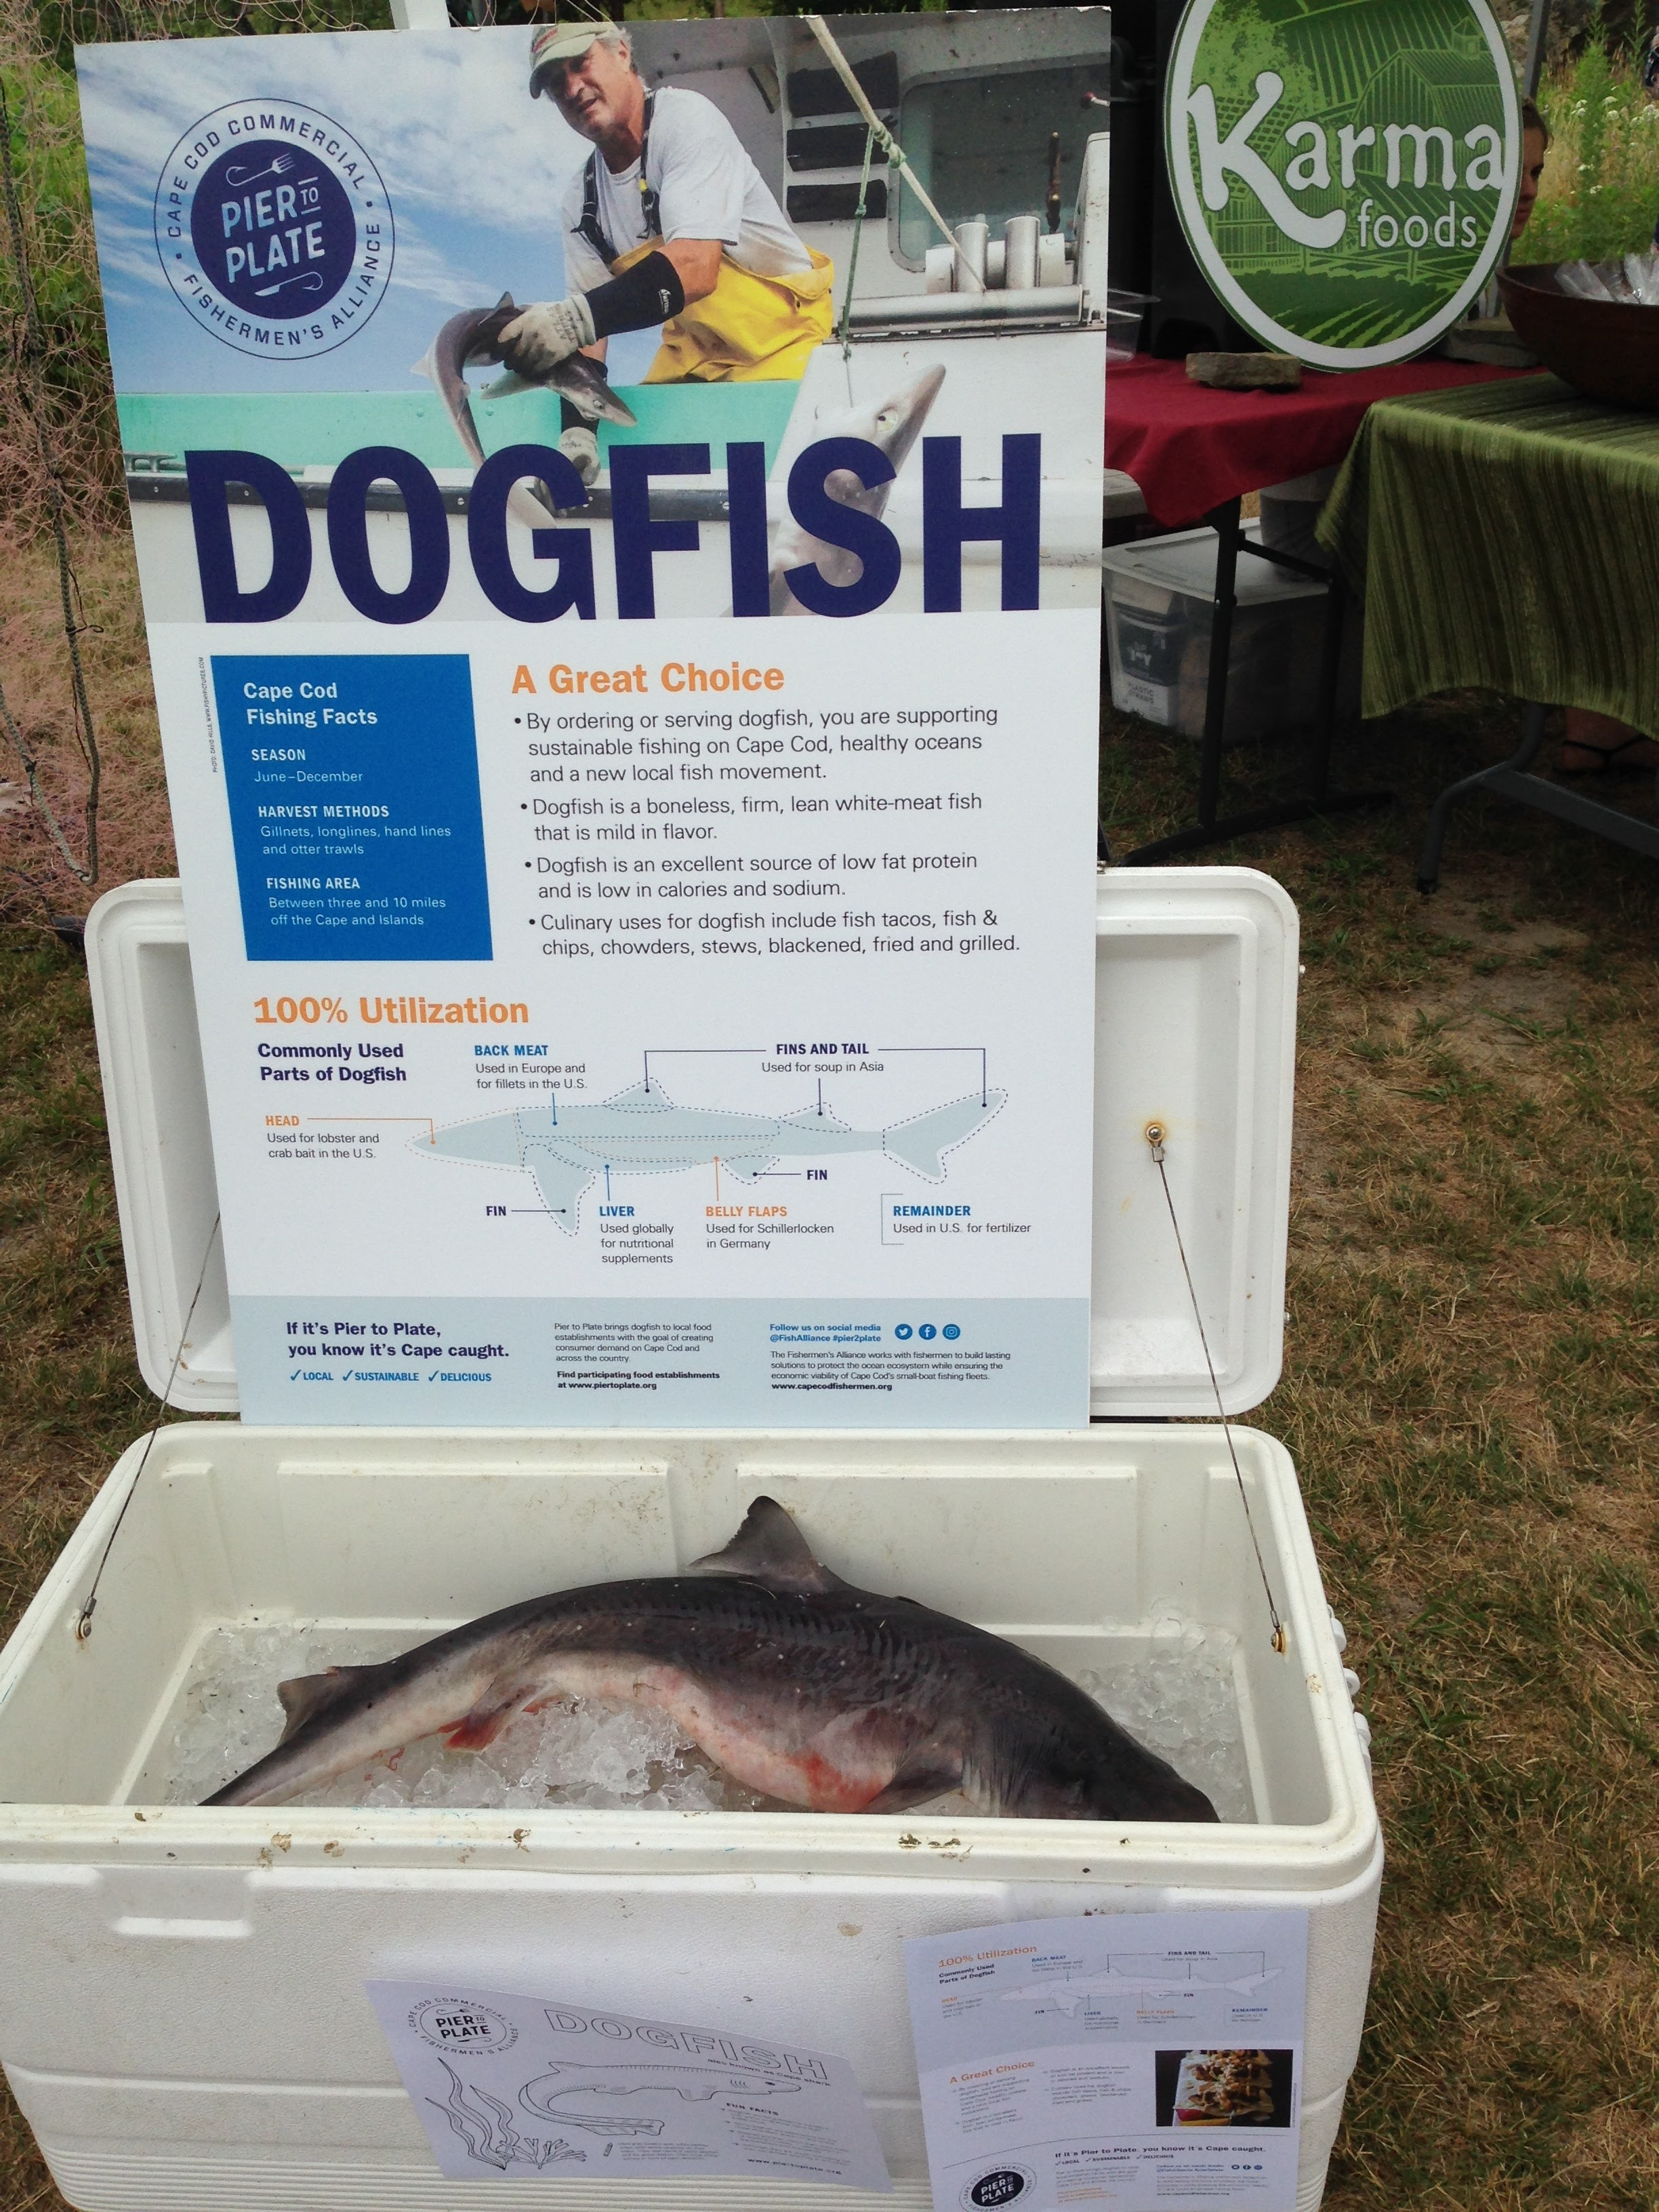 Dogfish display that the Brewster Farmers Market highlighting Pier to Plate